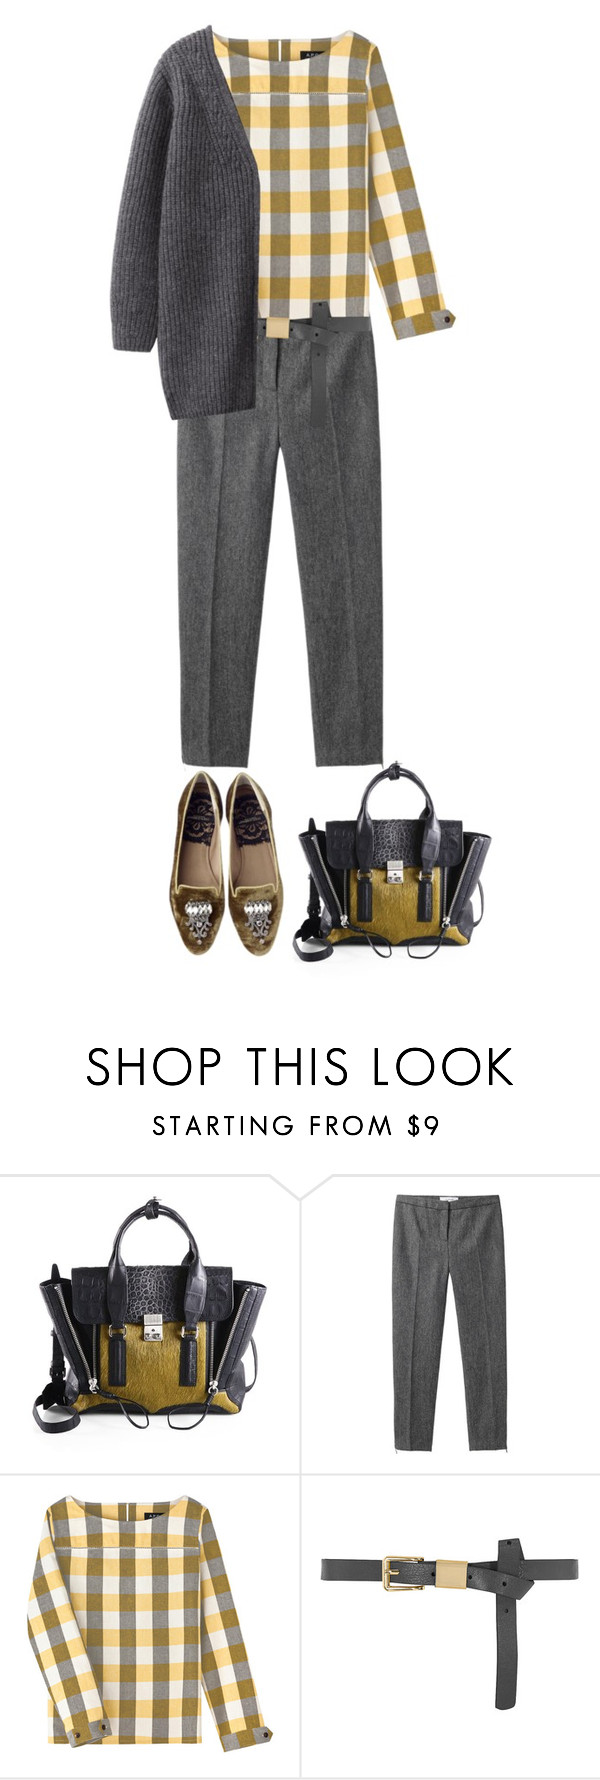 """Bez tytułu #615"" by agniecha ❤ liked on Polyvore featuring 3.1 Phillip Lim, Grey Line By Hussein Chalayan, A.P.C., Dolce&Gabbana, Dorothy Perkins and United Bamboo"